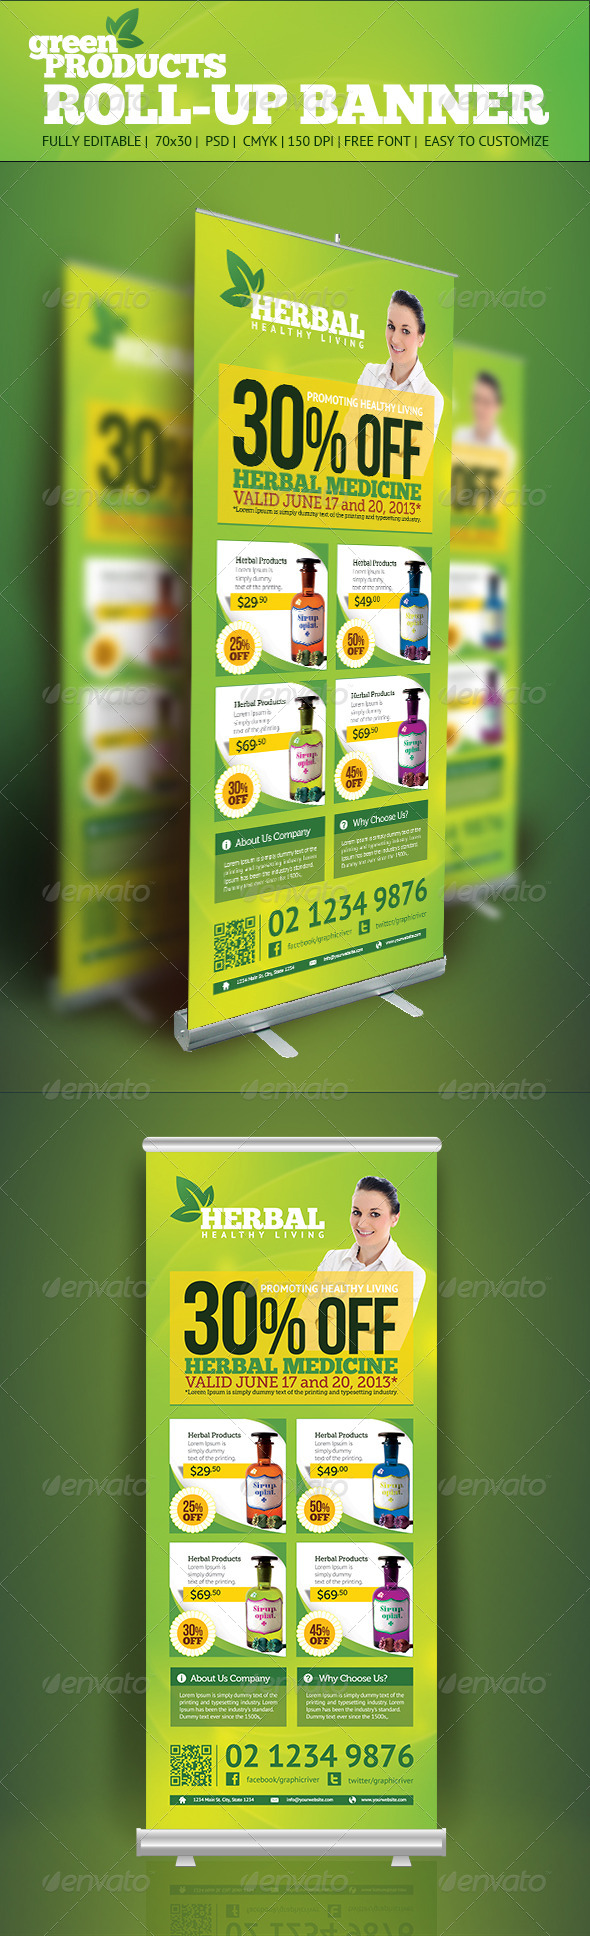 Product Roll Up Banner - Signage Print Templates